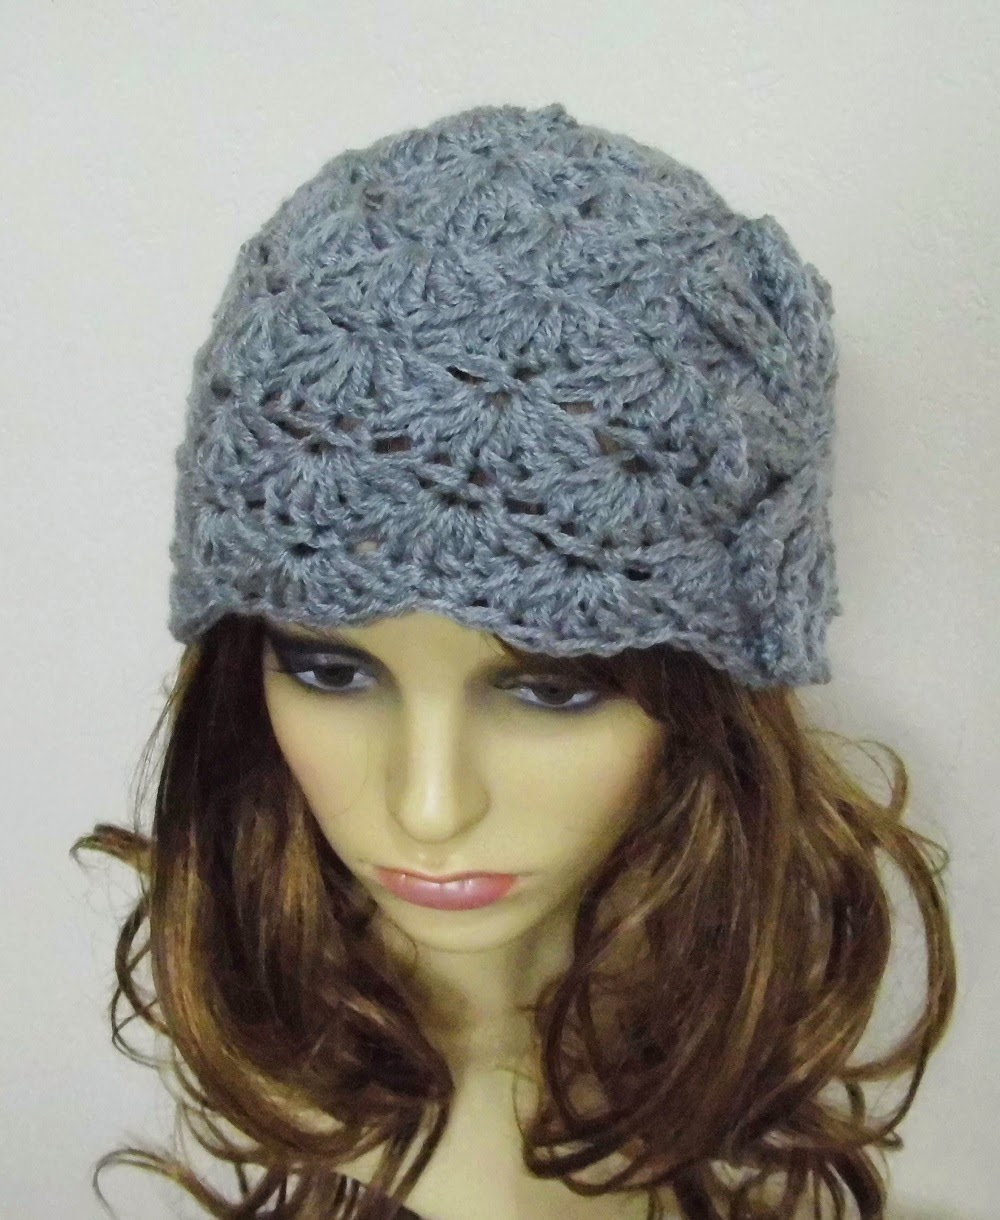 Crocheting Hats : ... +hat,+white+hat,+crochet+hats,+hats,+crochet+hat,+adult+hat,+..JPG